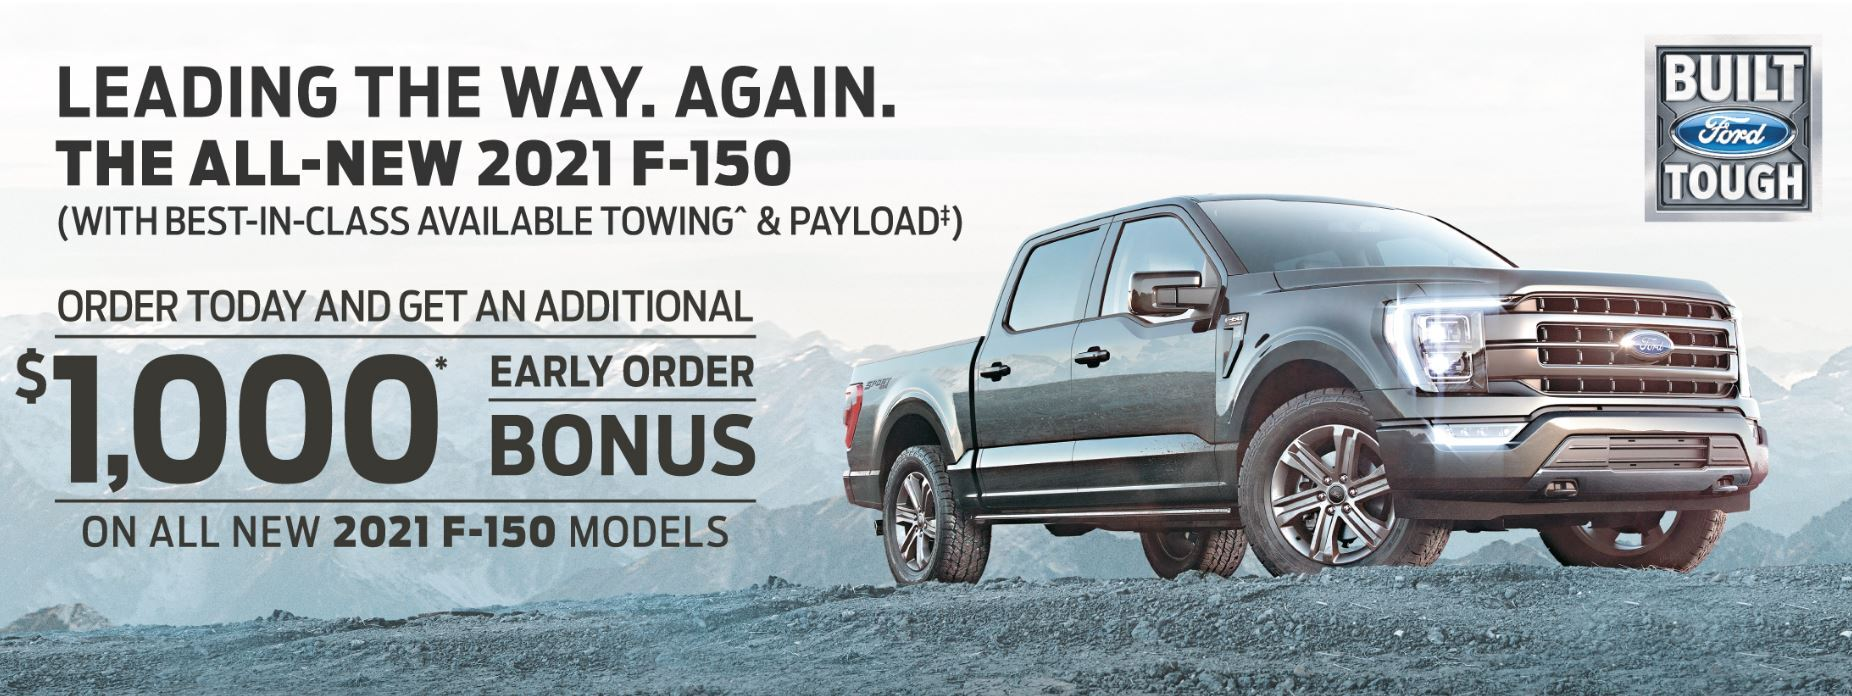 Order Your 2021 F-150 Today and Save an ADDITIONAL $1,000